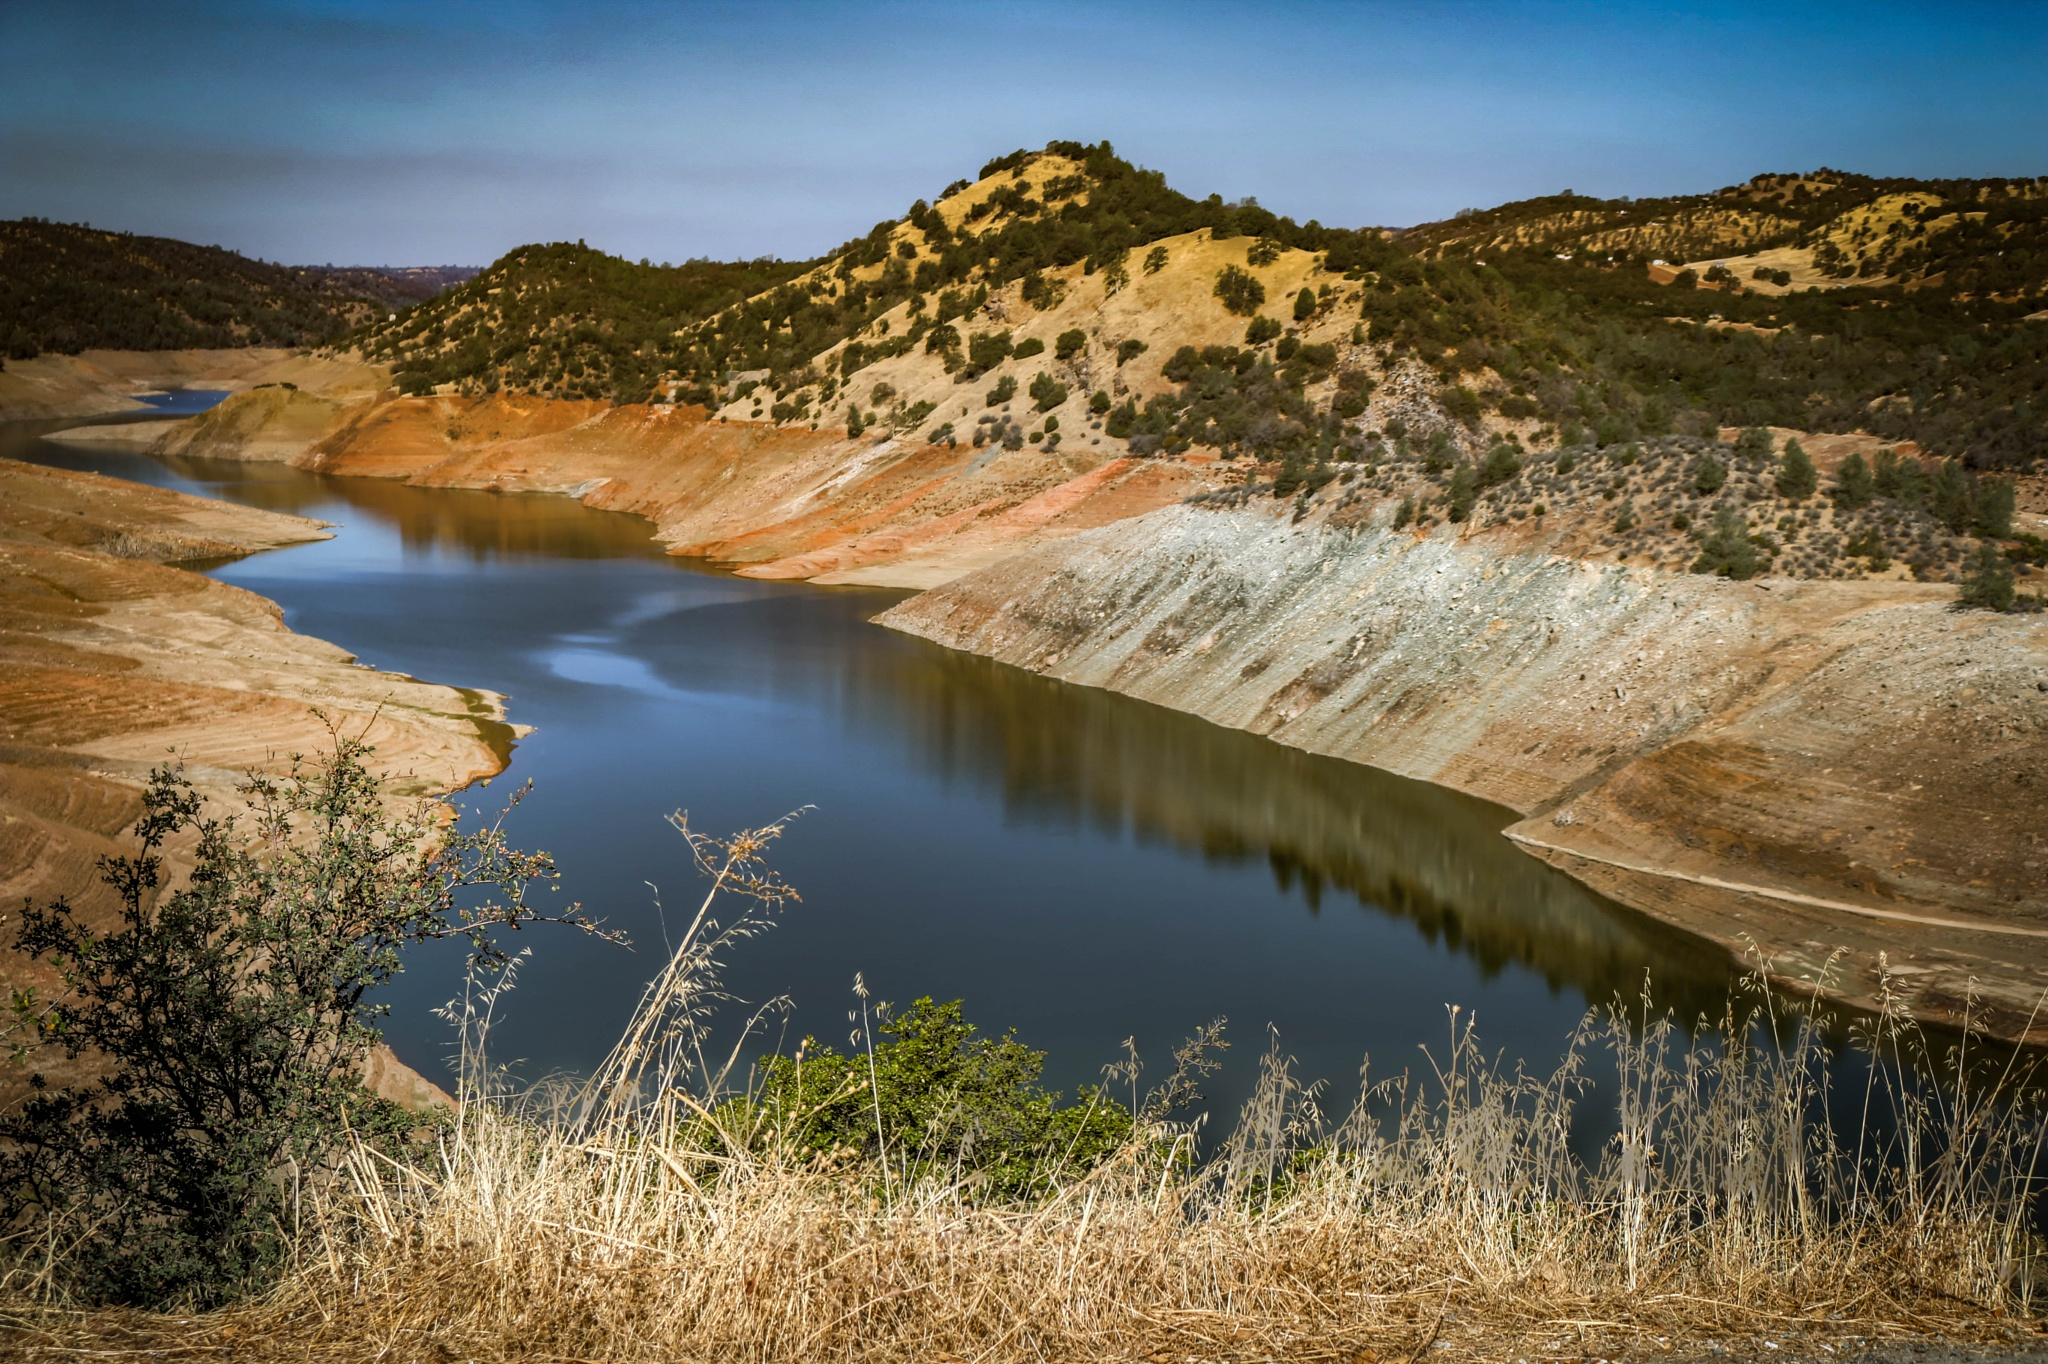 The devastating beauty of the California drought by Catherine